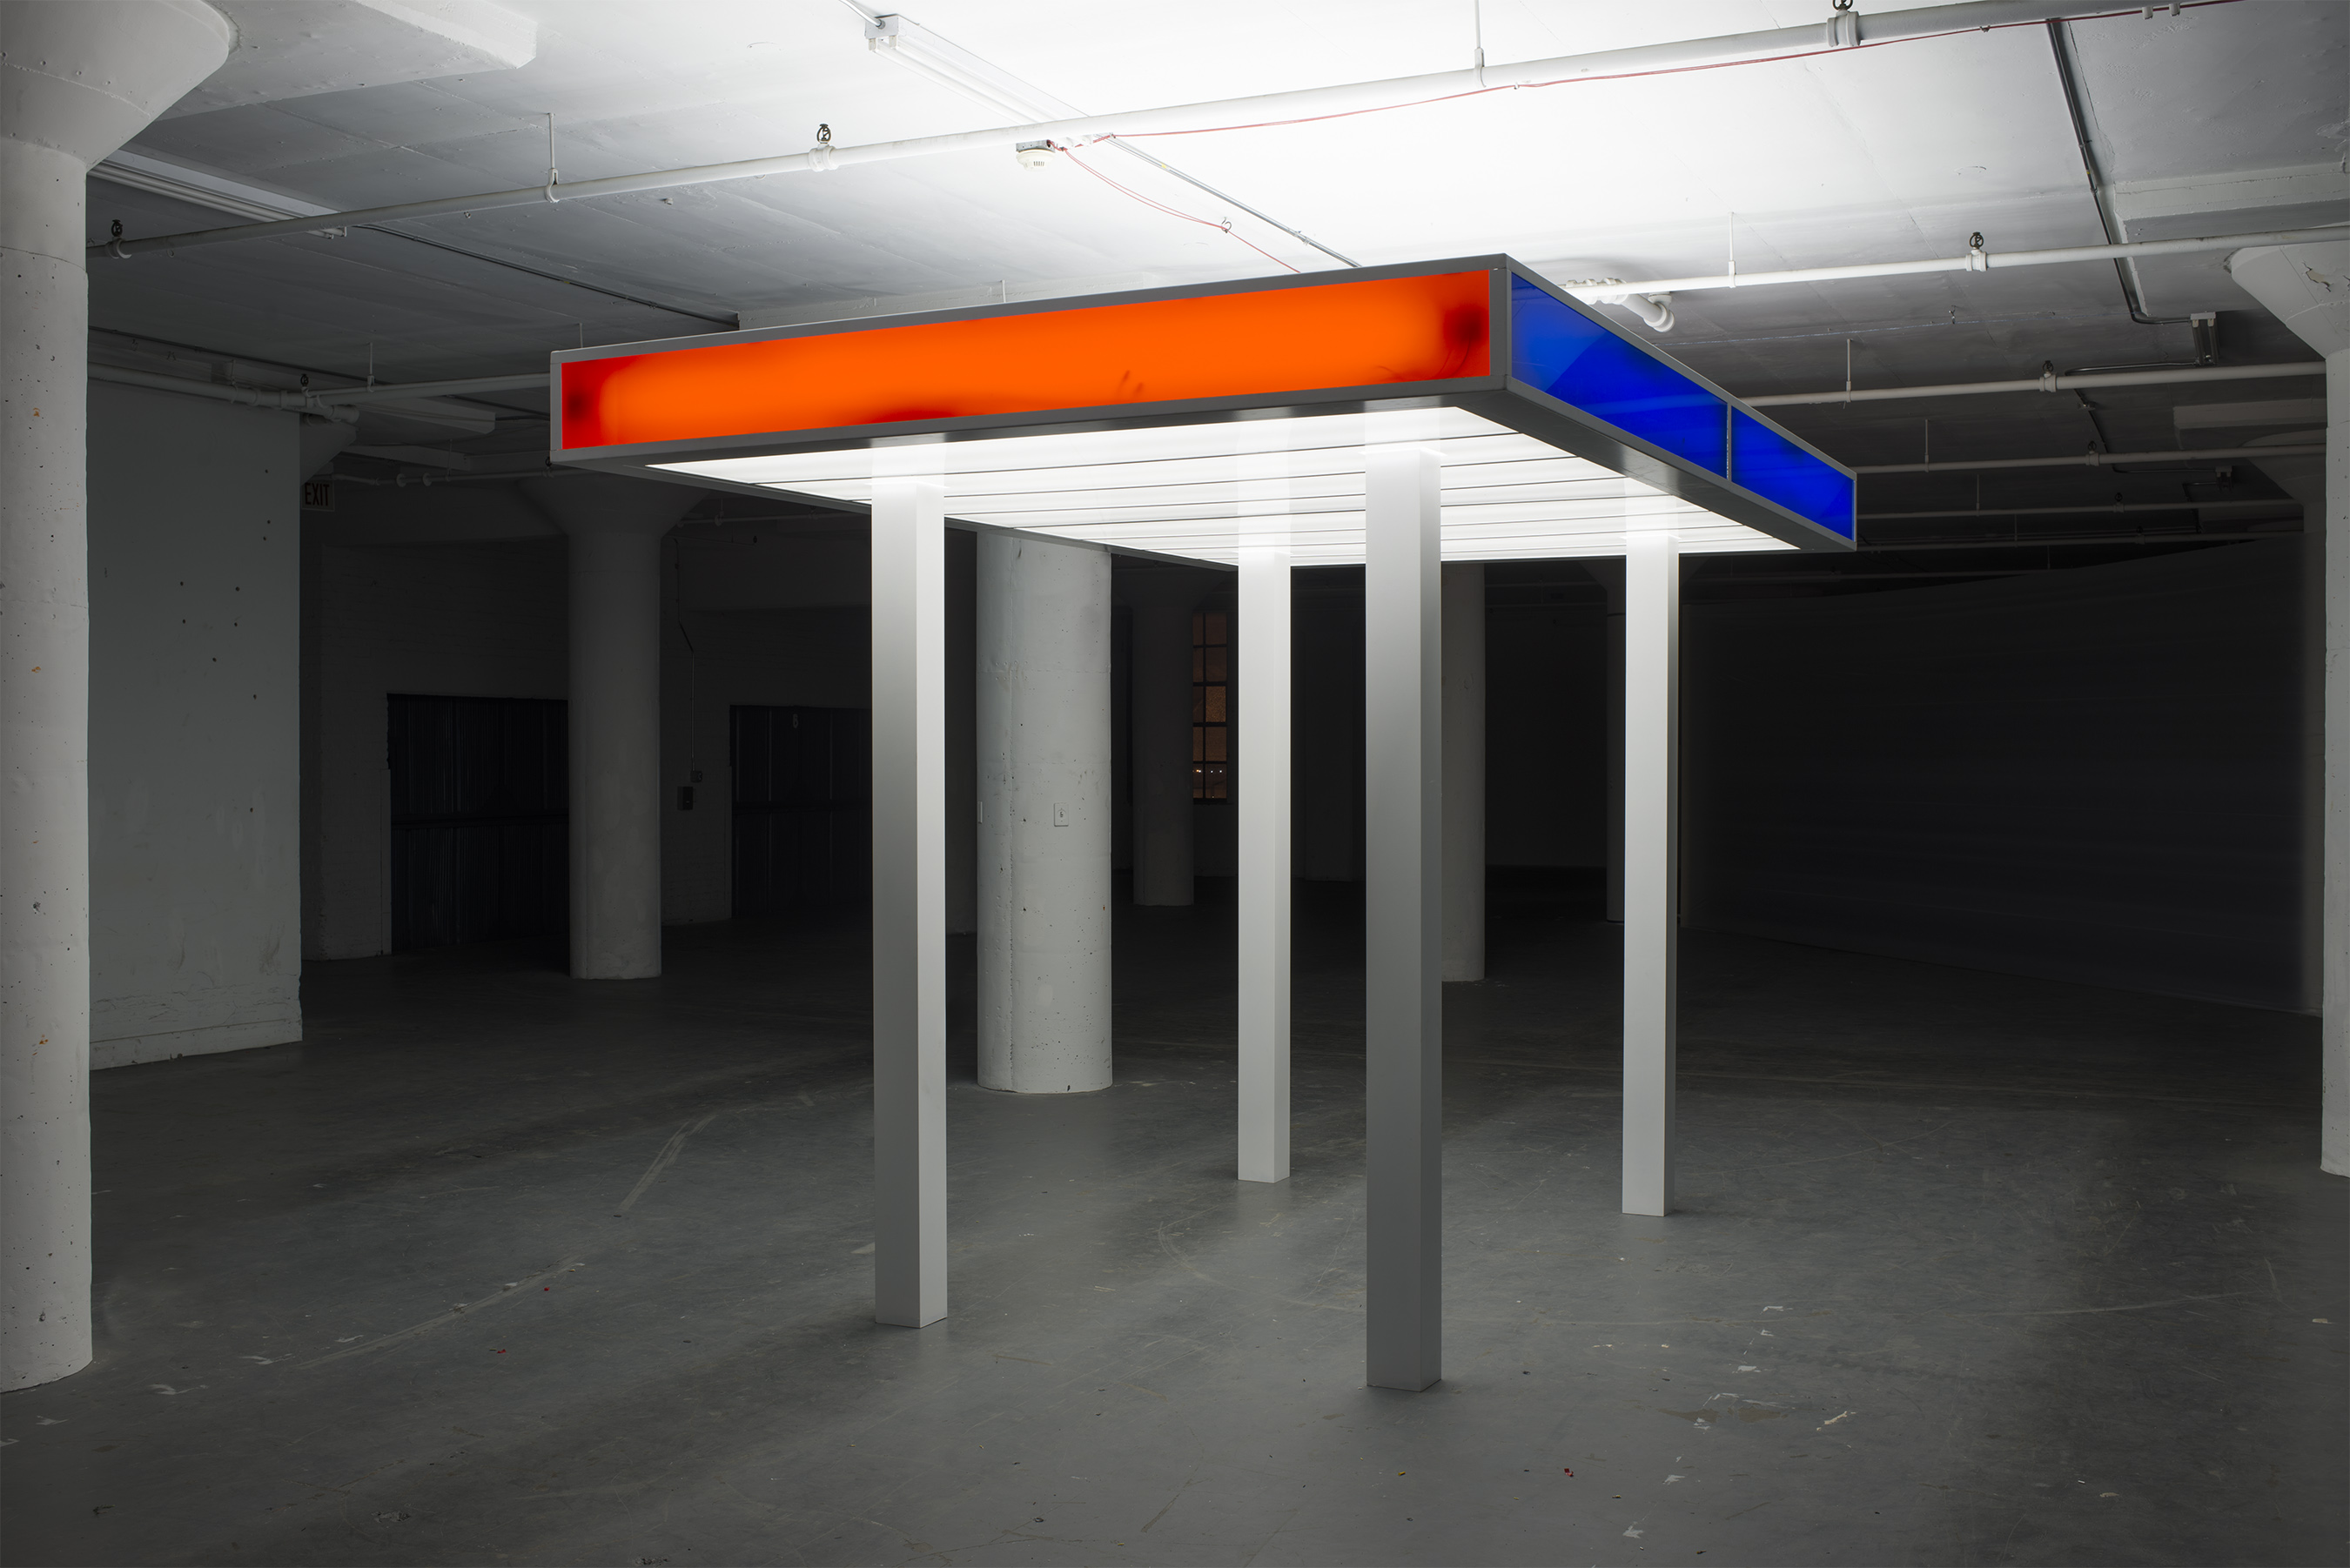 Lighted Shelter